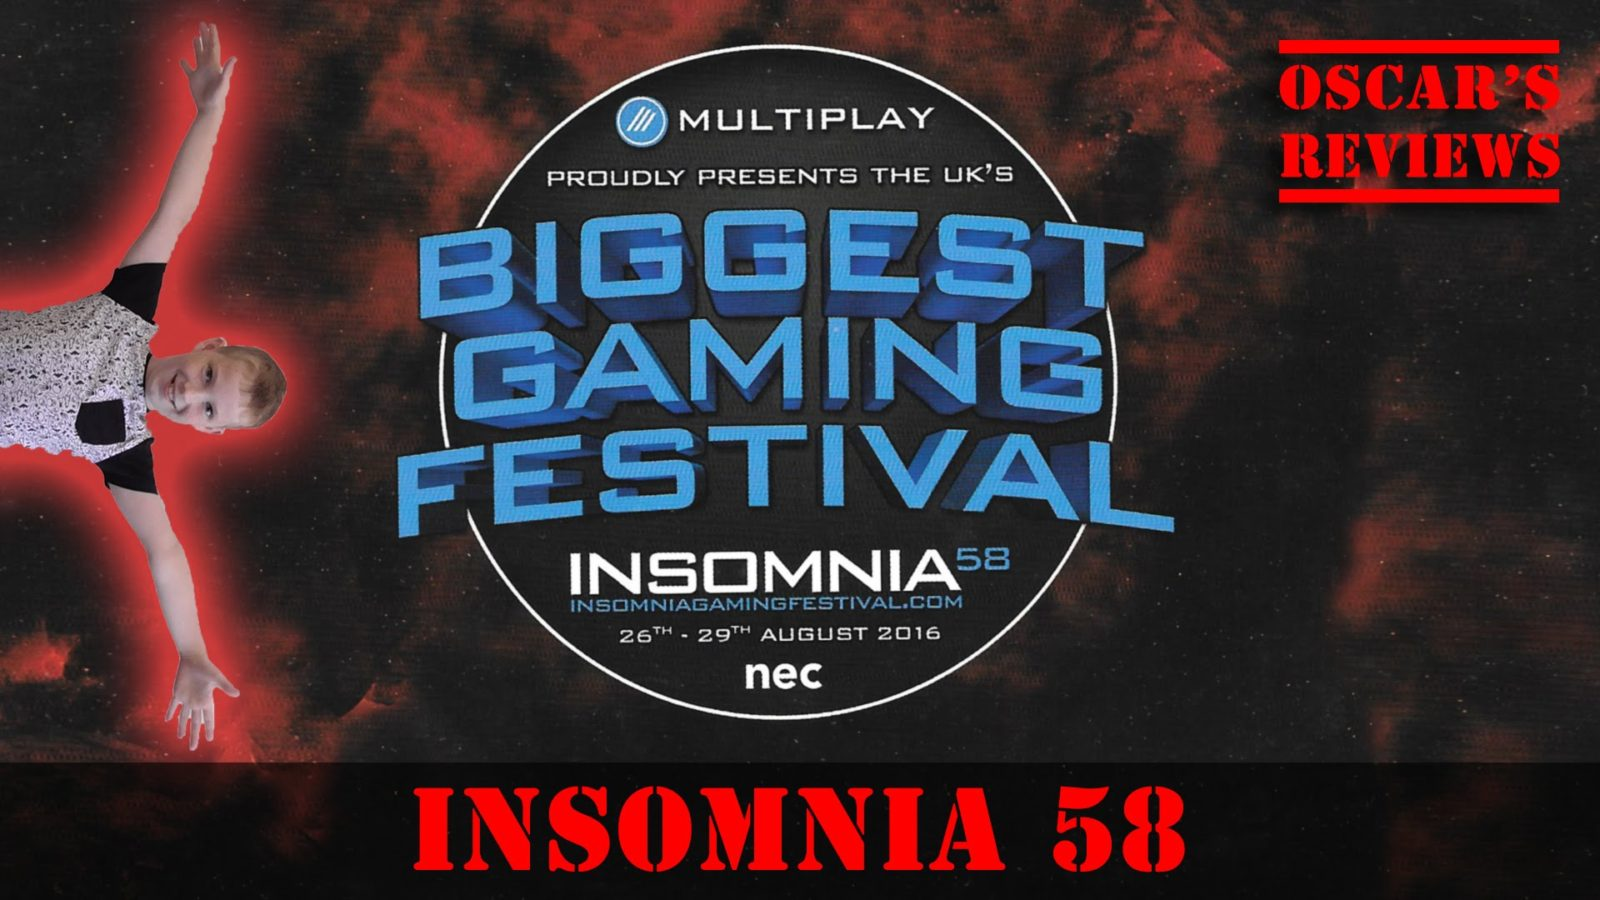 Insomnia 58 Gaming Festival – Sunday Highlights: Tomohawk, Bigbst4tz2, Robot Wars, Roblox and More